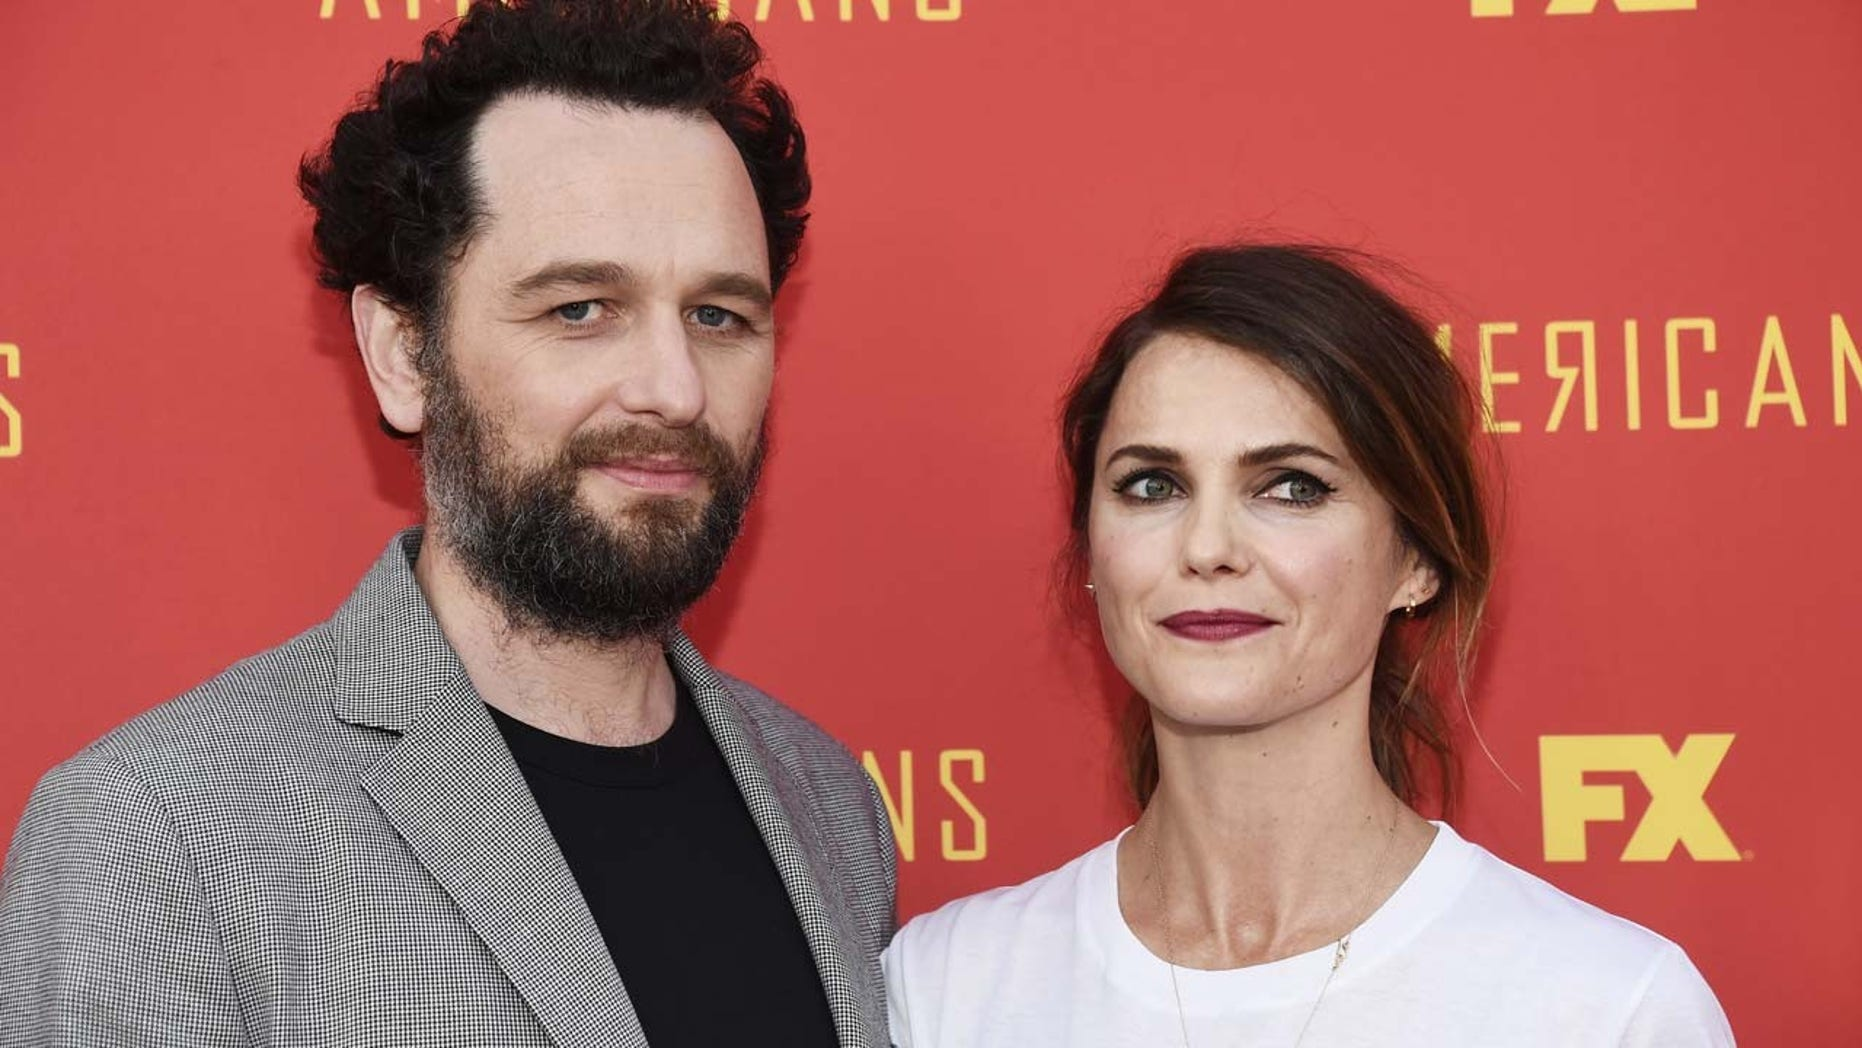 Keri Russell and Matthew Rhys tease about splitting up if they didn't both get Emmy noms in a new interview with Entertainment Tonight.